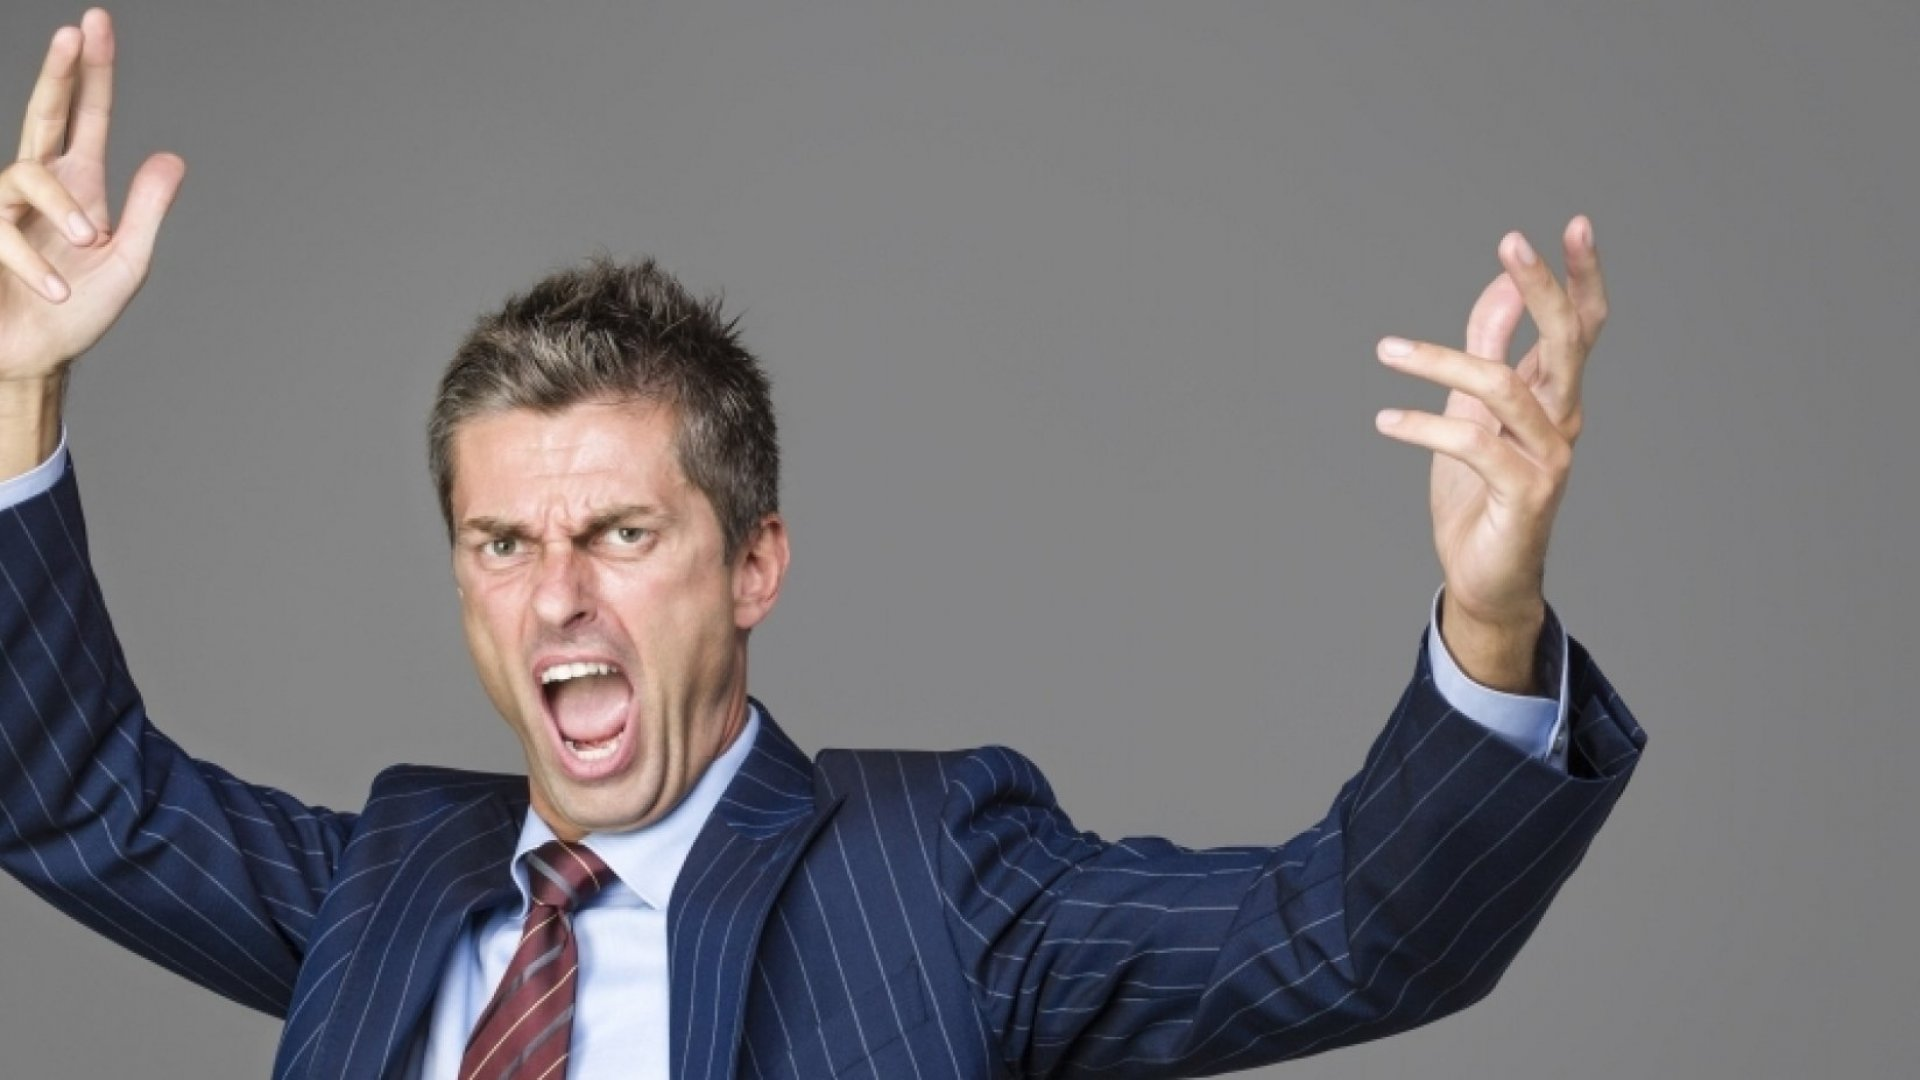 5 Things You Need to Know to Stop Hiring Jerks